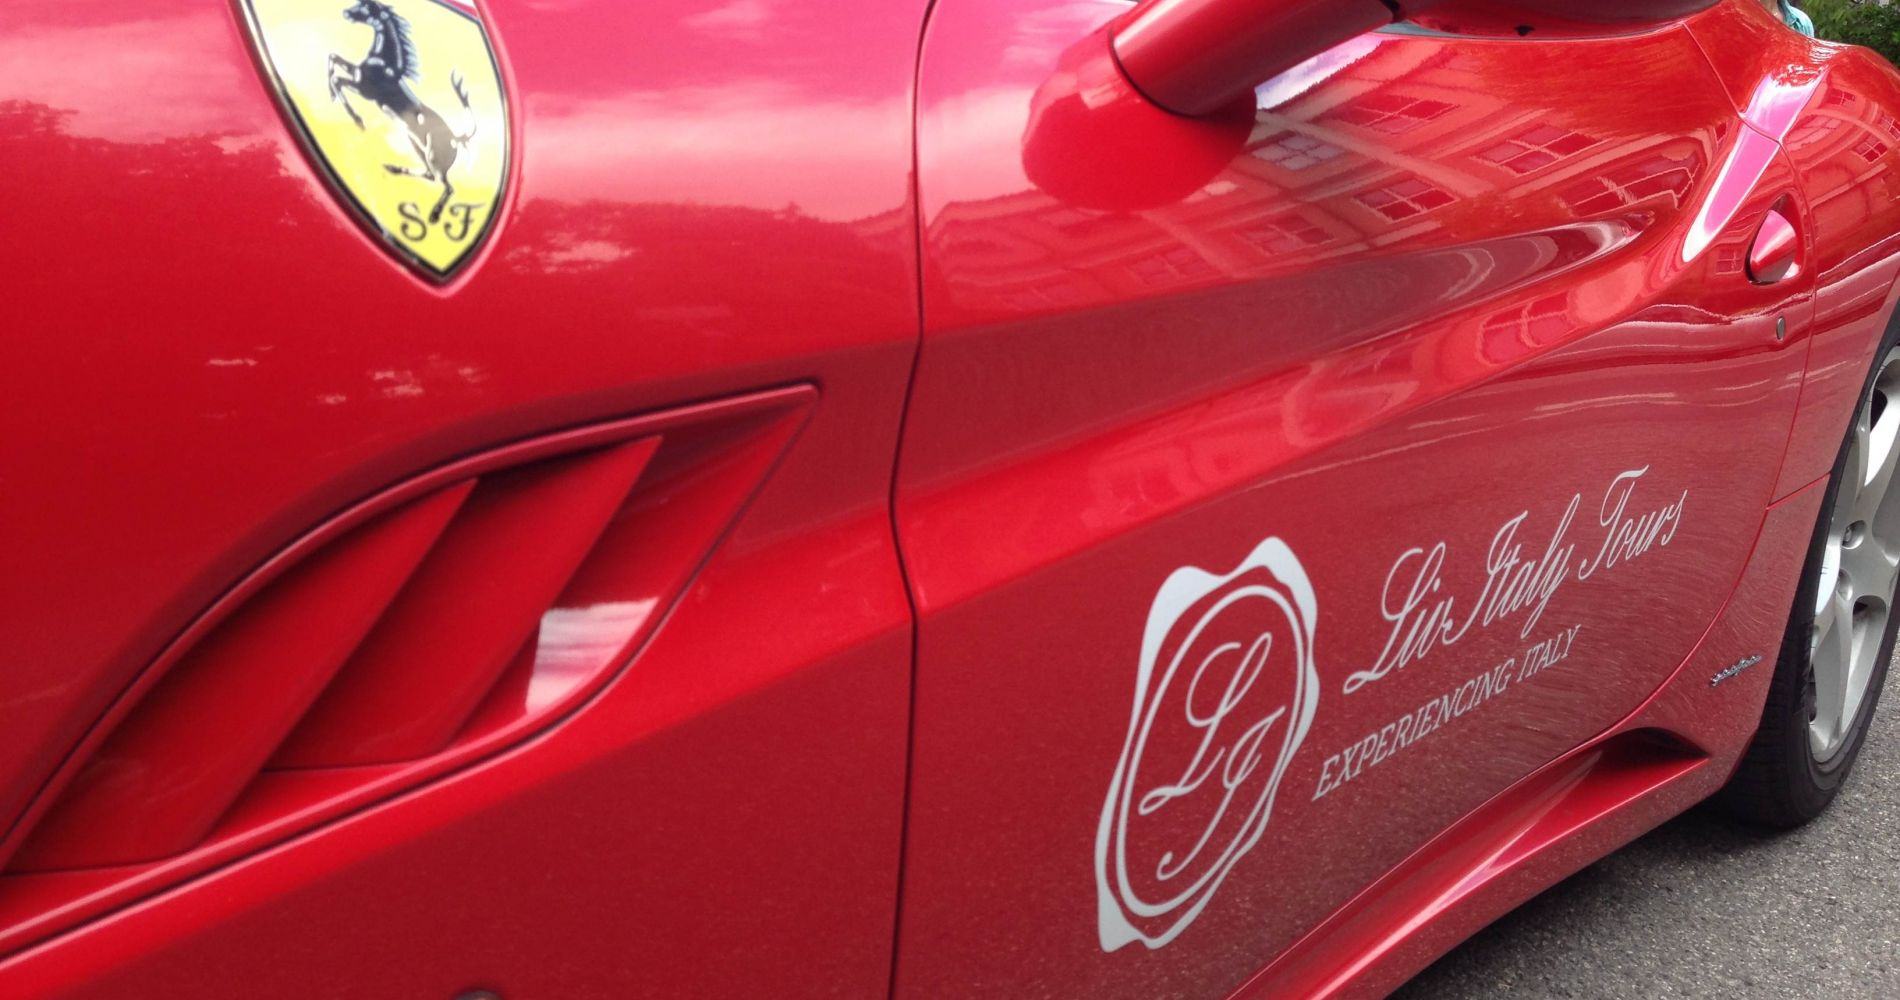 Ferrari Driving Experience Italy Tinggly Experience Gifts